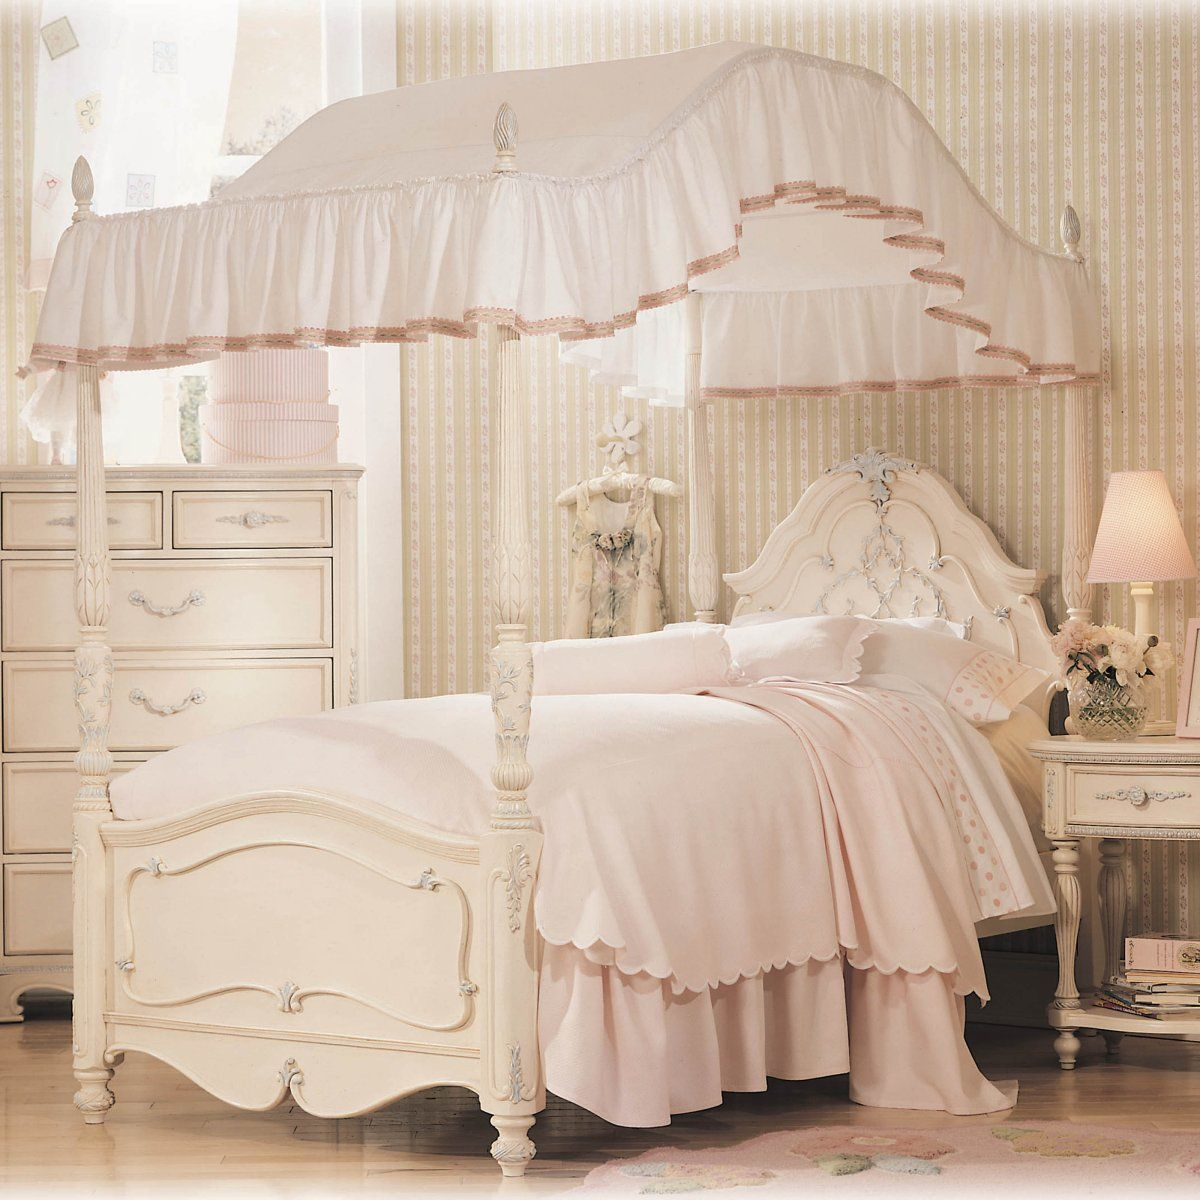 Beautiful Bed Bedroom Small Beautiful Pink Canopy Bed For Girls